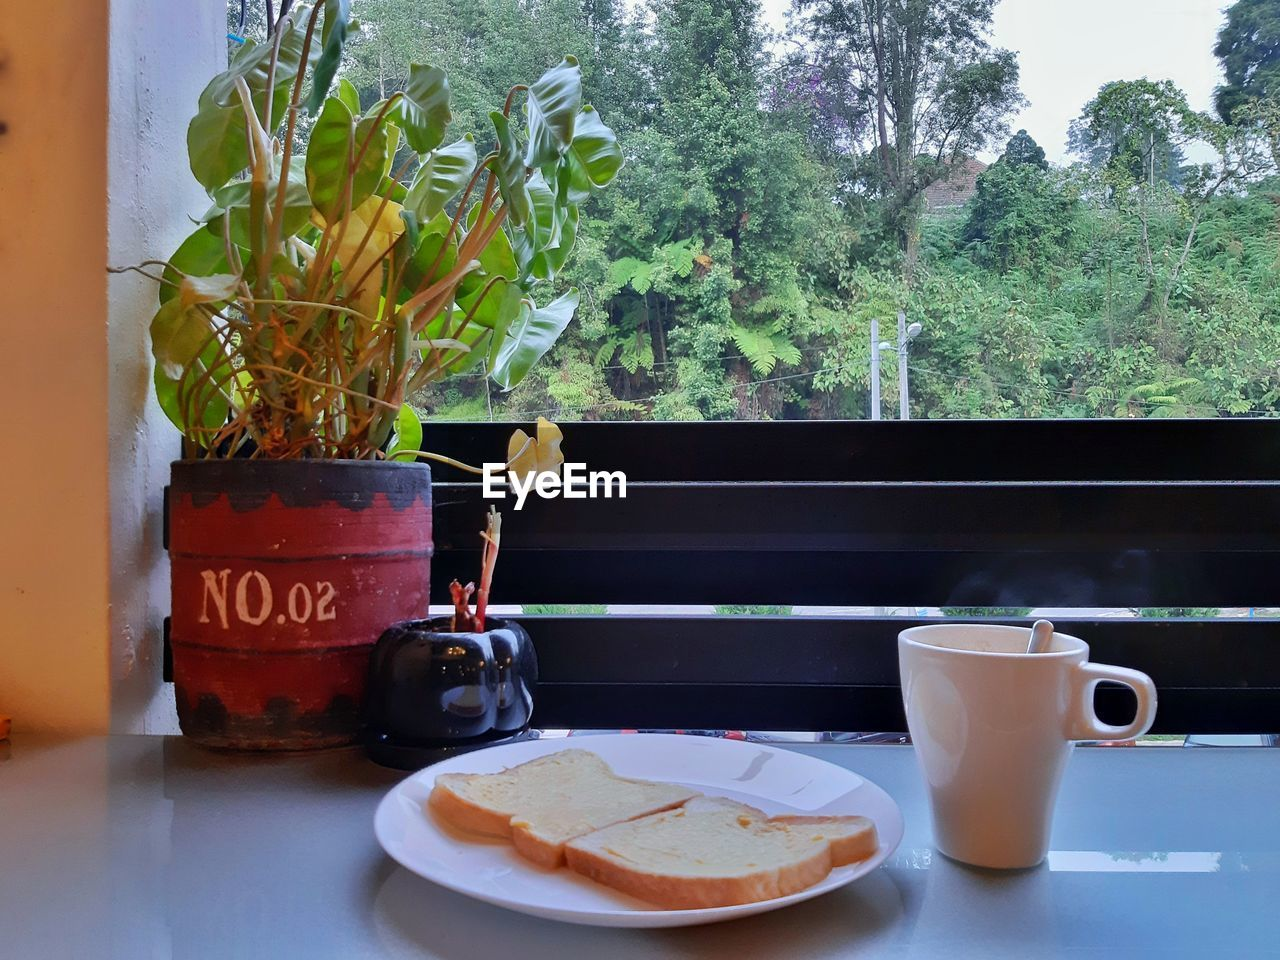 food and drink, plant, drink, table, cup, refreshment, mug, freshness, coffee cup, coffee, no people, indoors, potted plant, still life, coffee - drink, food, plate, nature, growth, window, hot drink, breakfast, meal, crockery, tea cup, glass, houseplant, non-alcoholic beverage